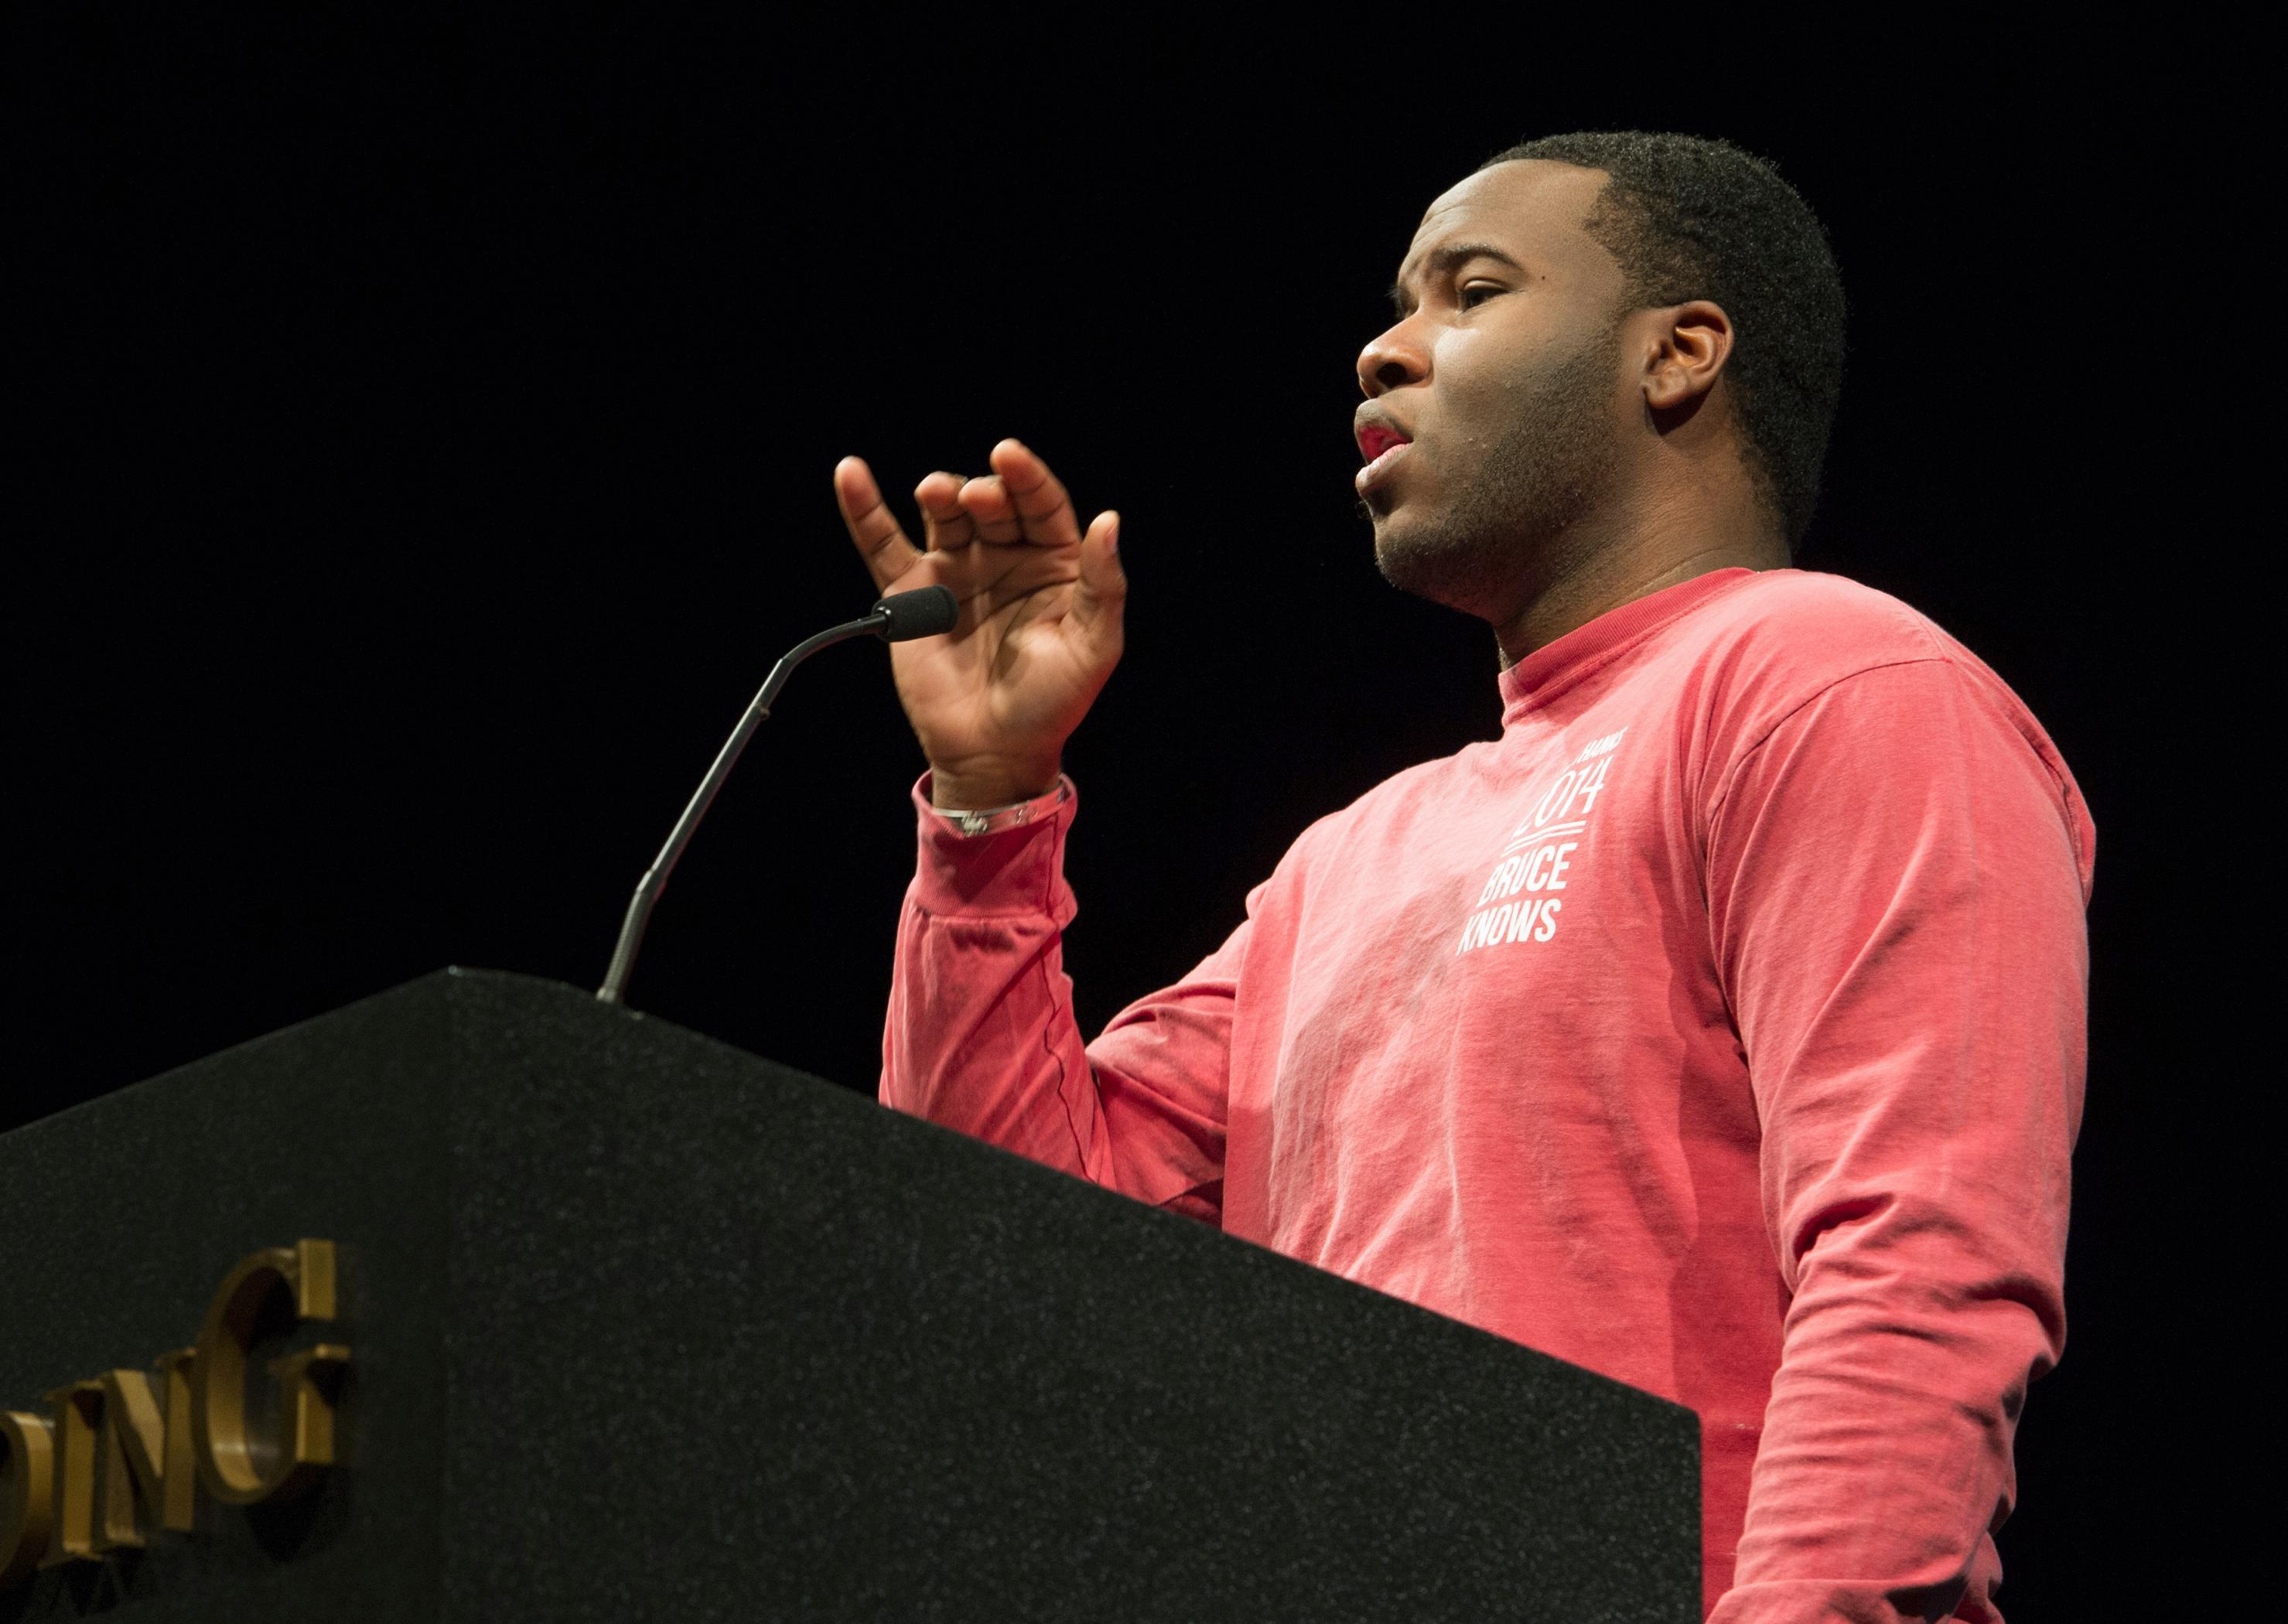 FILE - This March 24, 2014, file photo provided by Harding University in Searcy, Ark., shows Botham Jean, speaking at the university. Jean was fatally shot Sept. 6, 2018, by off-duty officer Amber Guyger who says she mistook his residence for her own. (Jeff Montgomery/Harding University via AP, File)